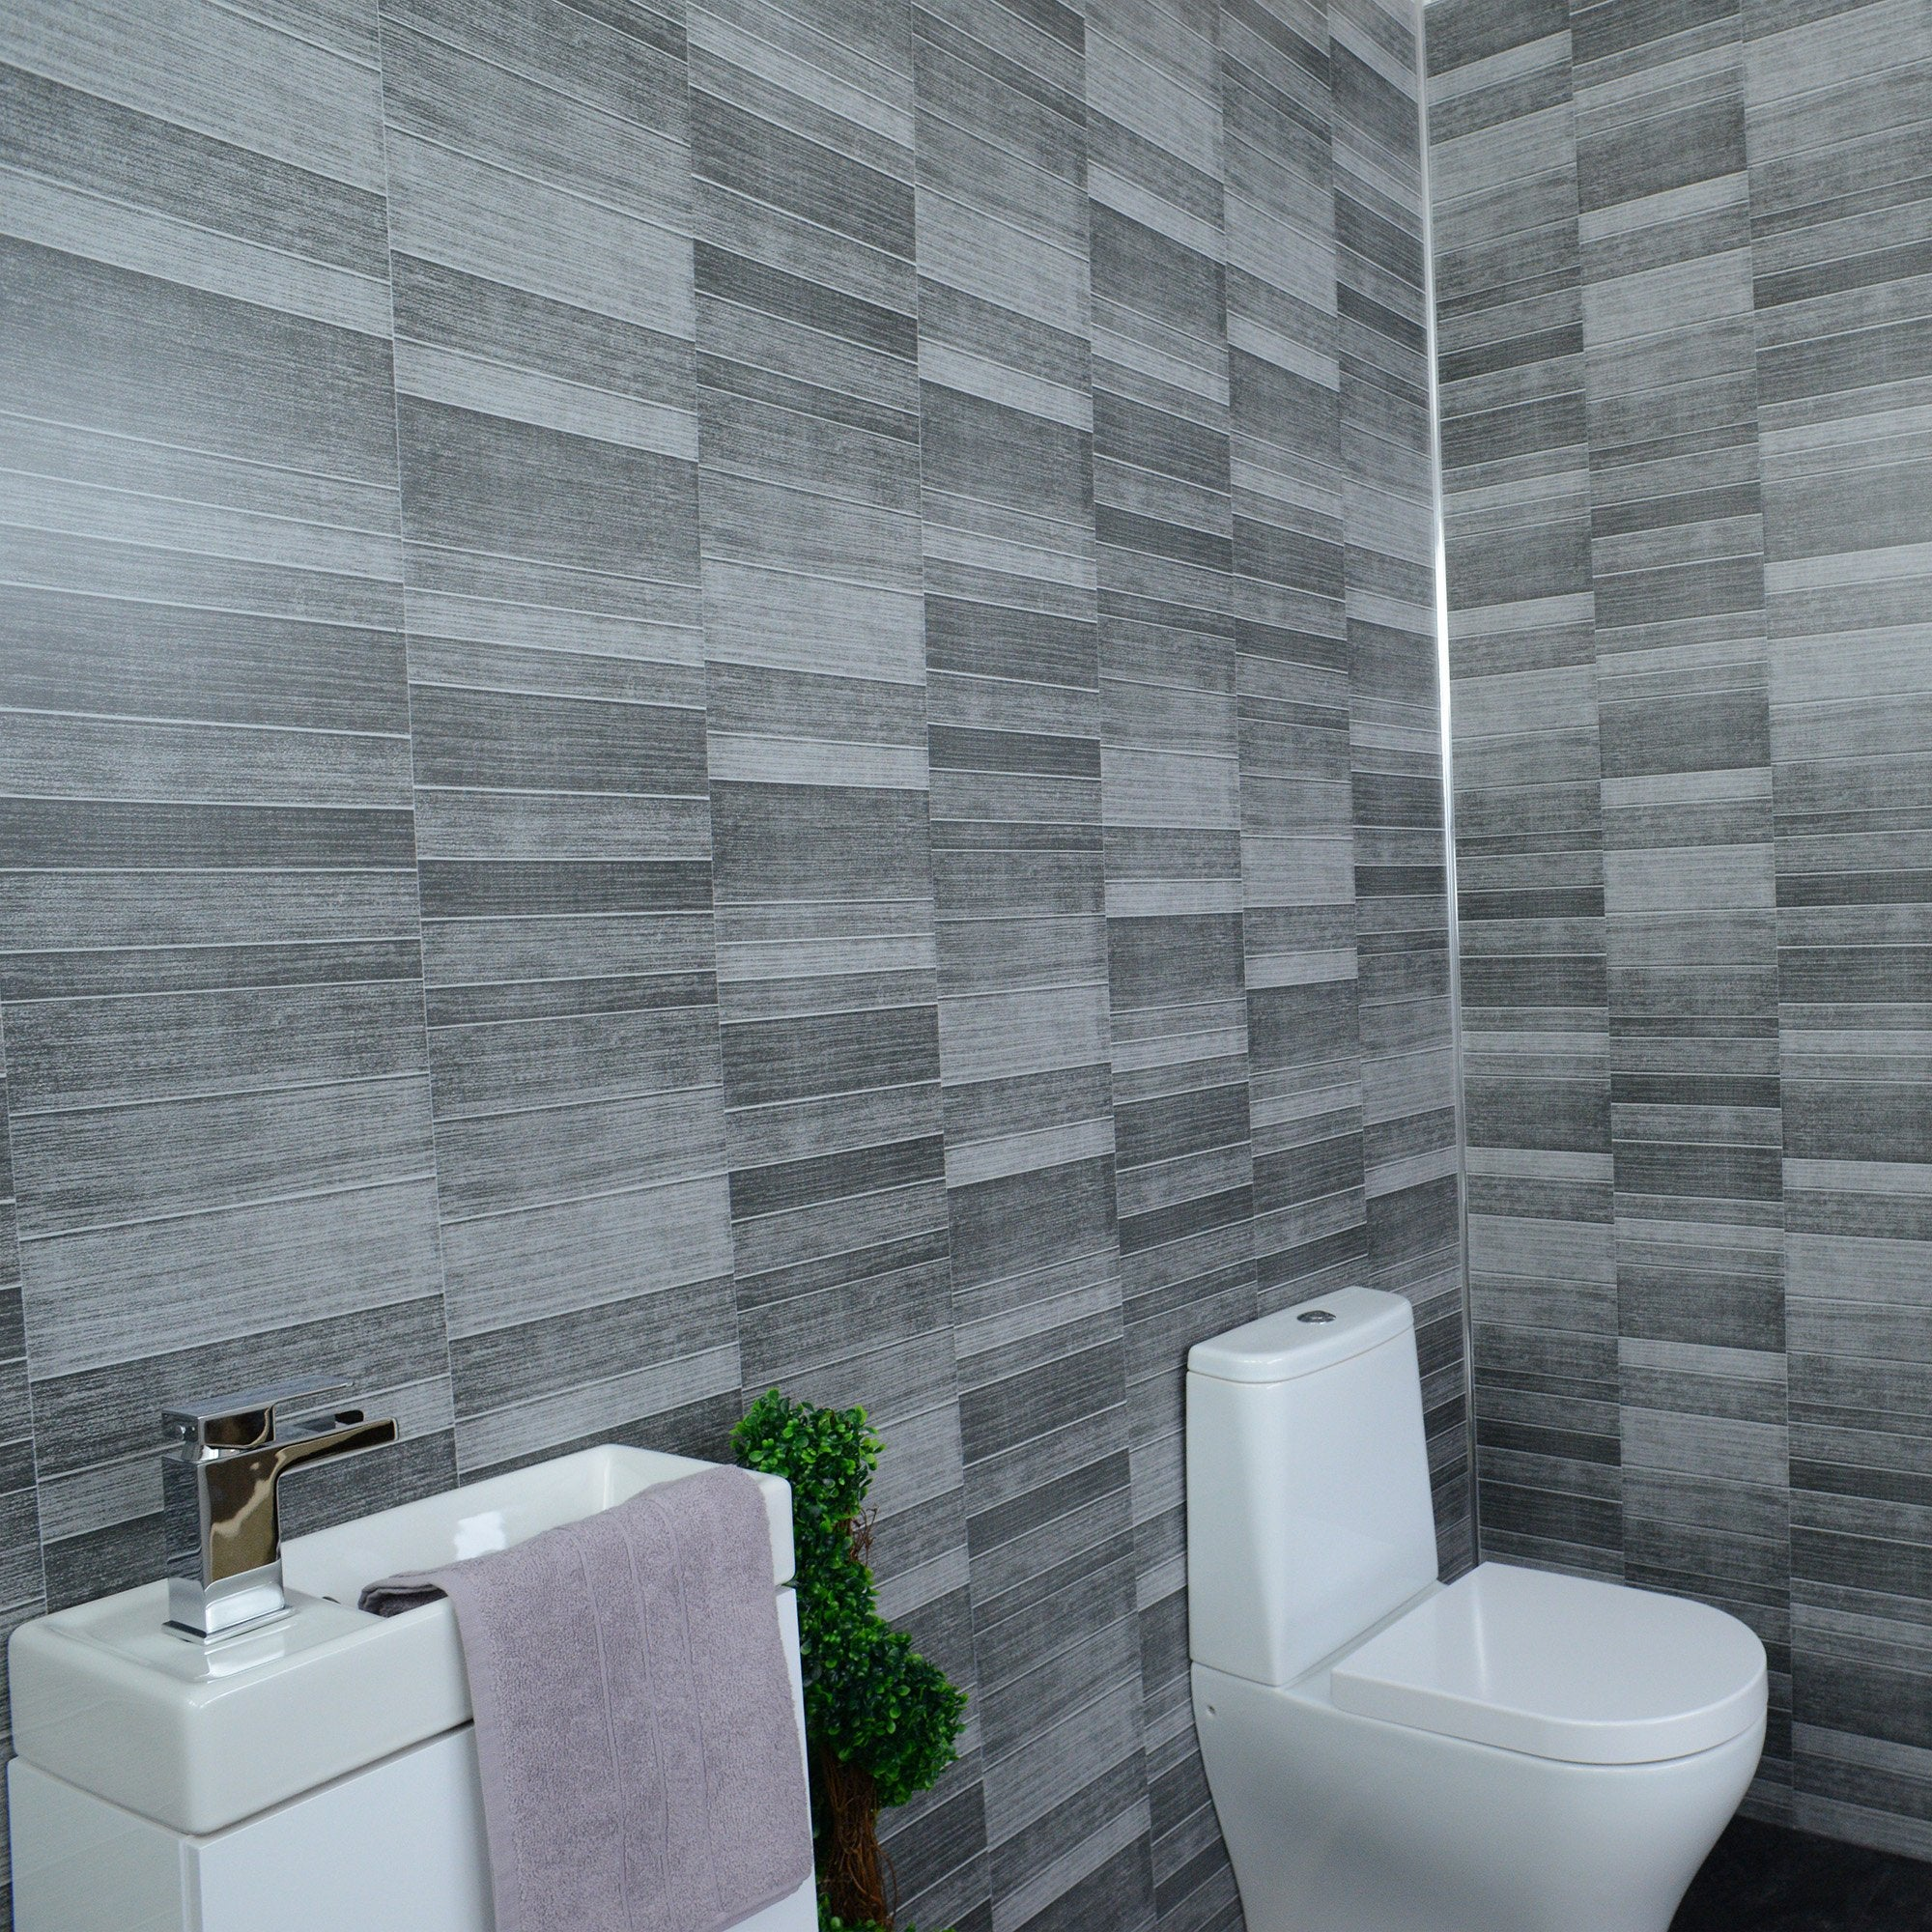 EOL Dark Grey Small Tile Bathroom Wall Panels PVC 8mm Thick Cladding (Box of 12 Panels) - CladdTech